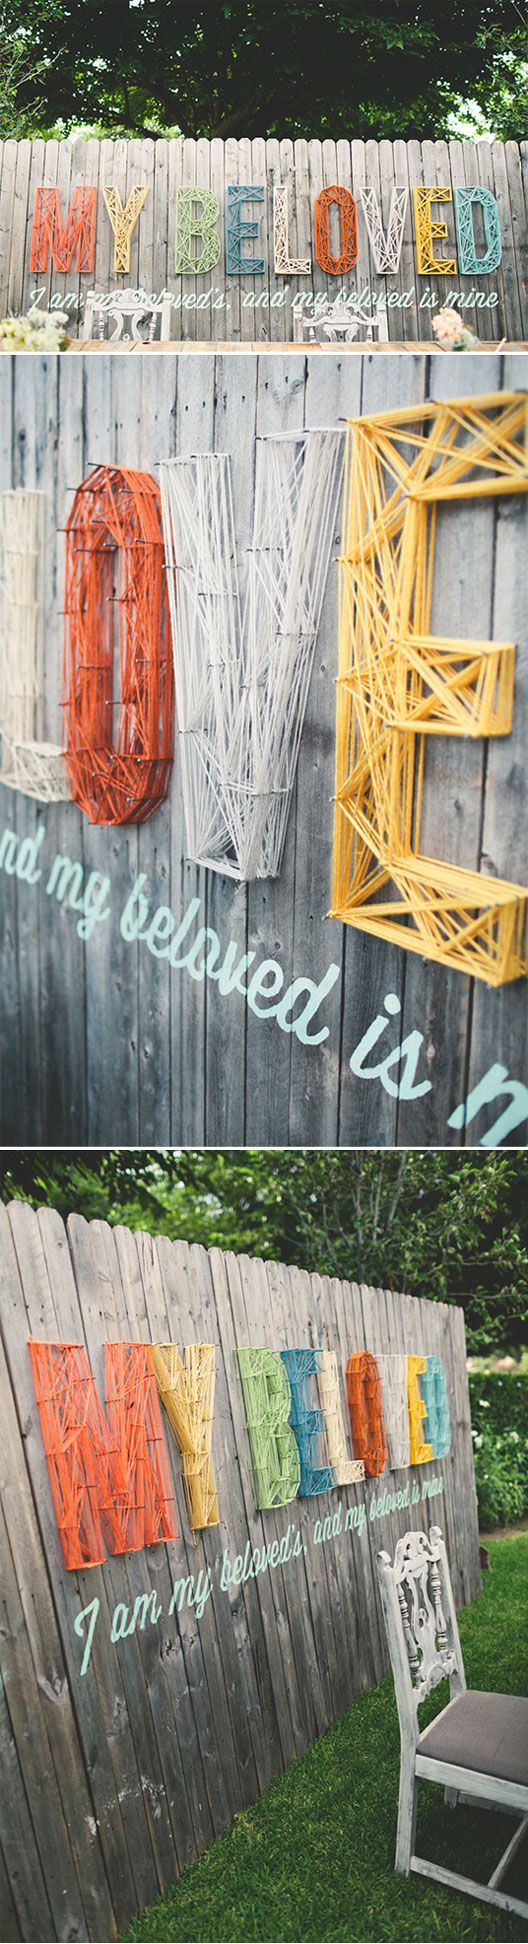 25 Incredible DIY Garden Fence Wall Art Ideas on Outdoor Garden Wall Art Ideas id=11498